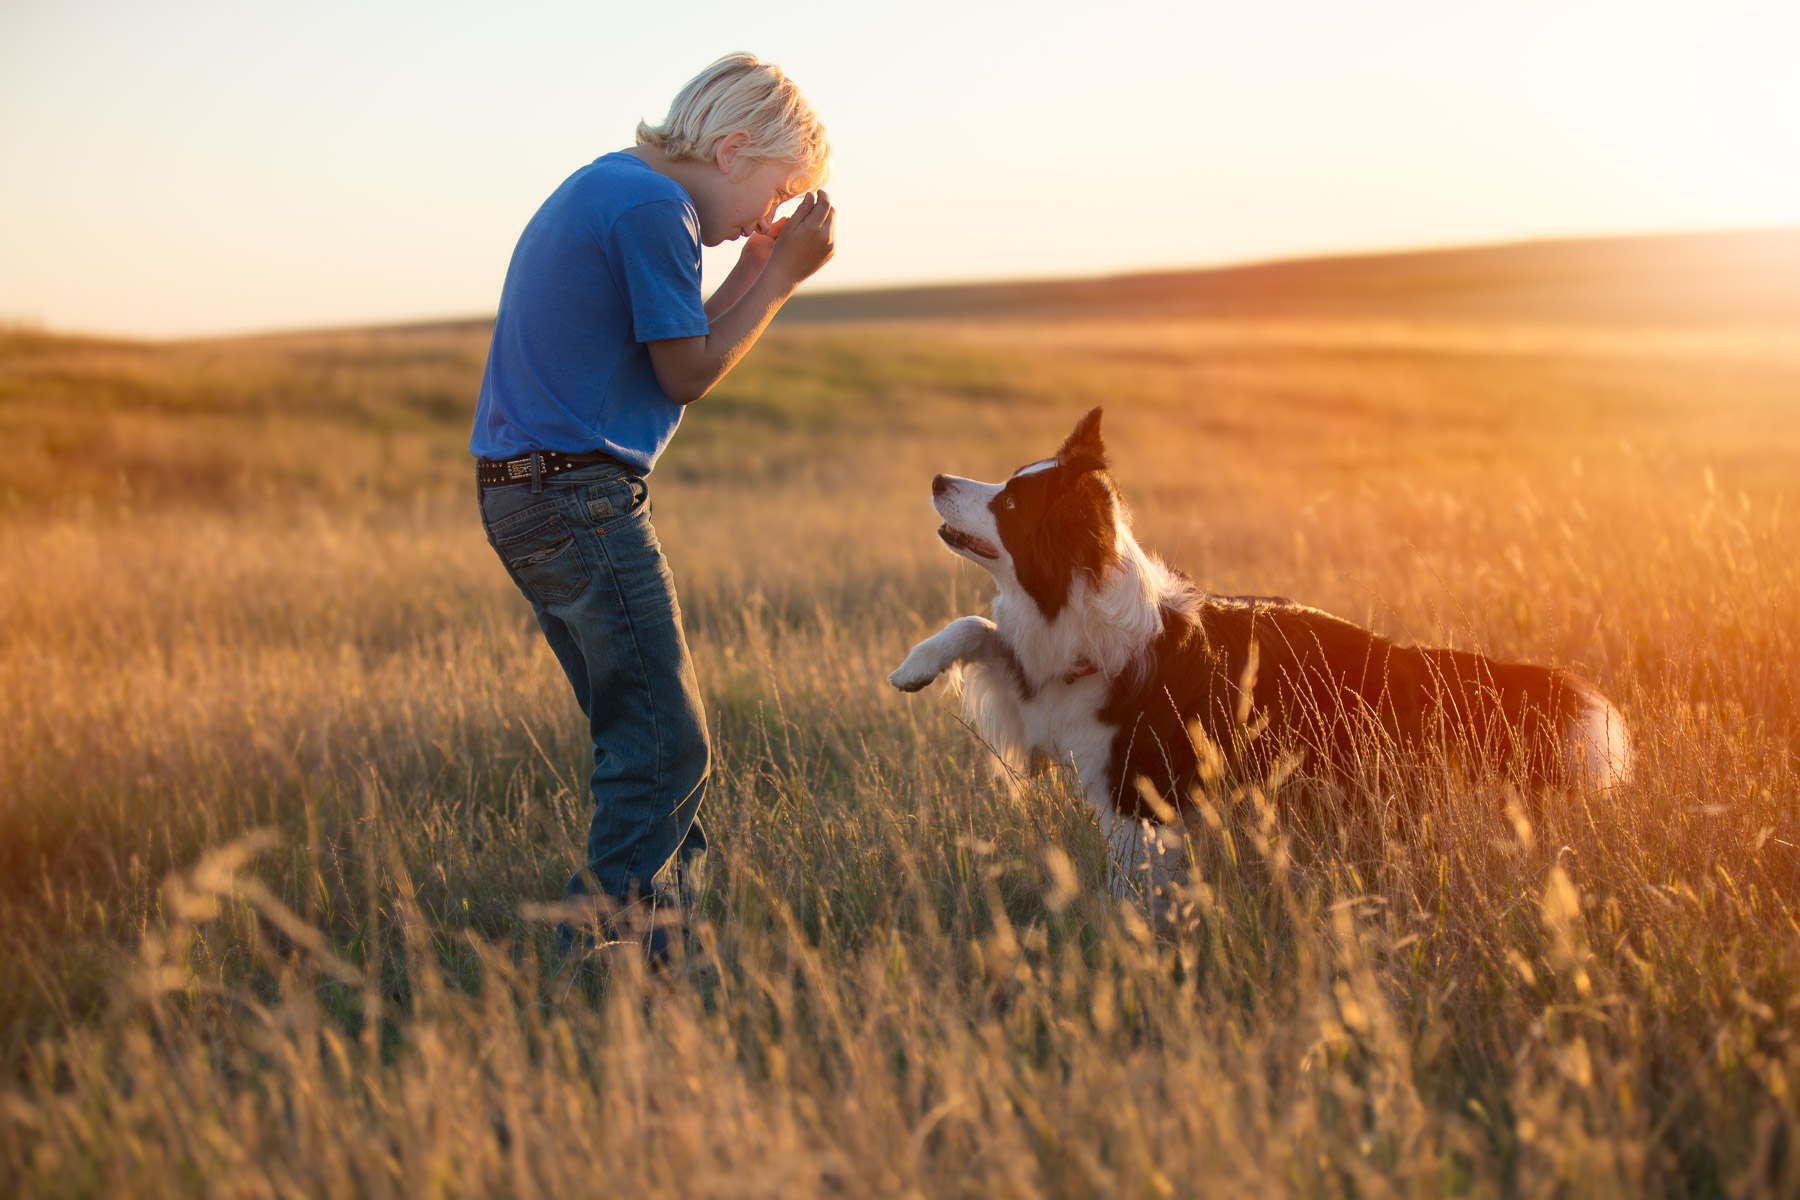 kid-playing-dog-collie-sunset-outdoors-dog-photographer.jpg